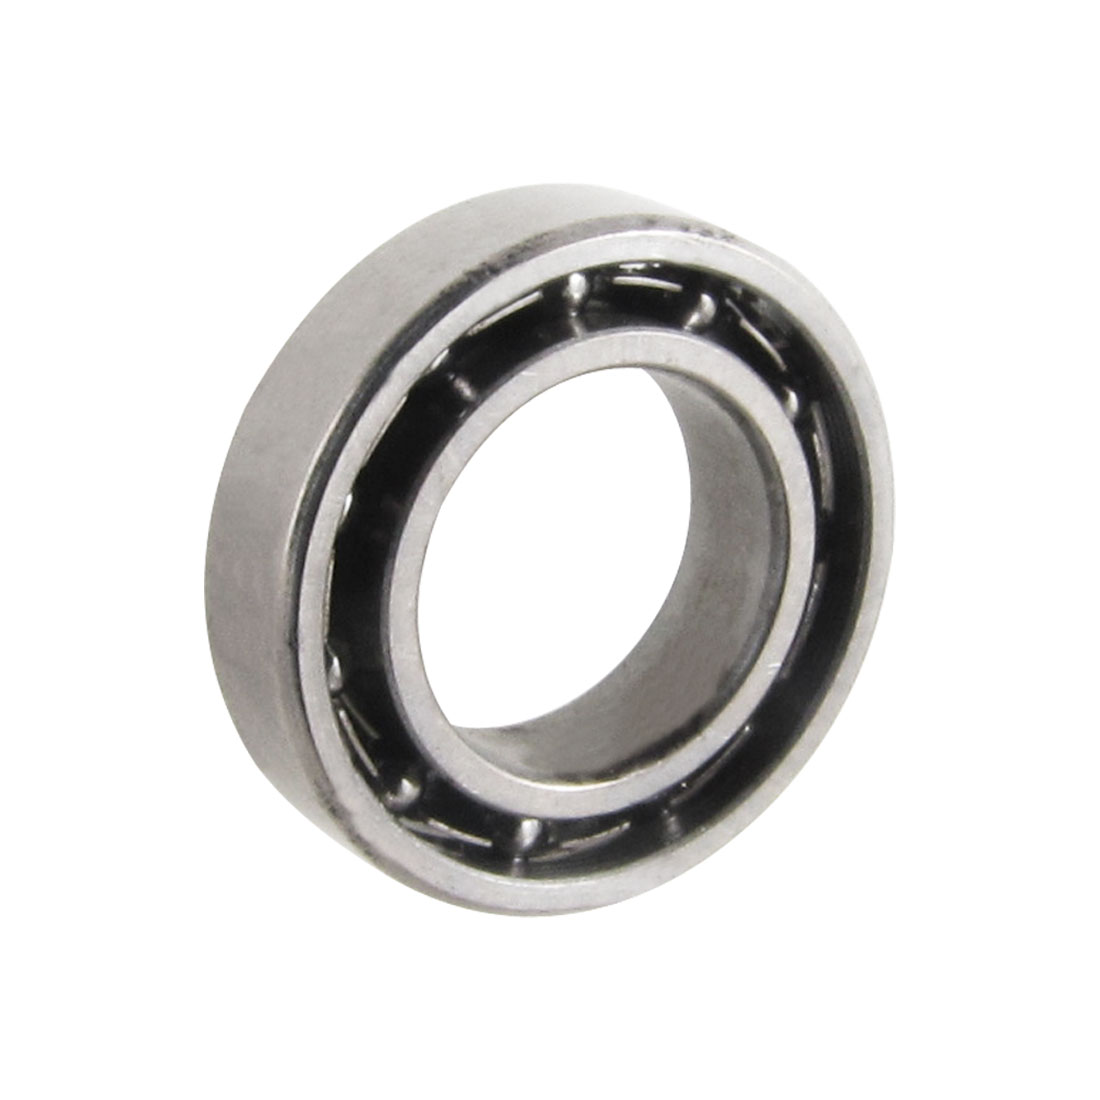 8mm x 14mm x 3.5mm Open Stainless Steel Deep Groove Ball Bearing